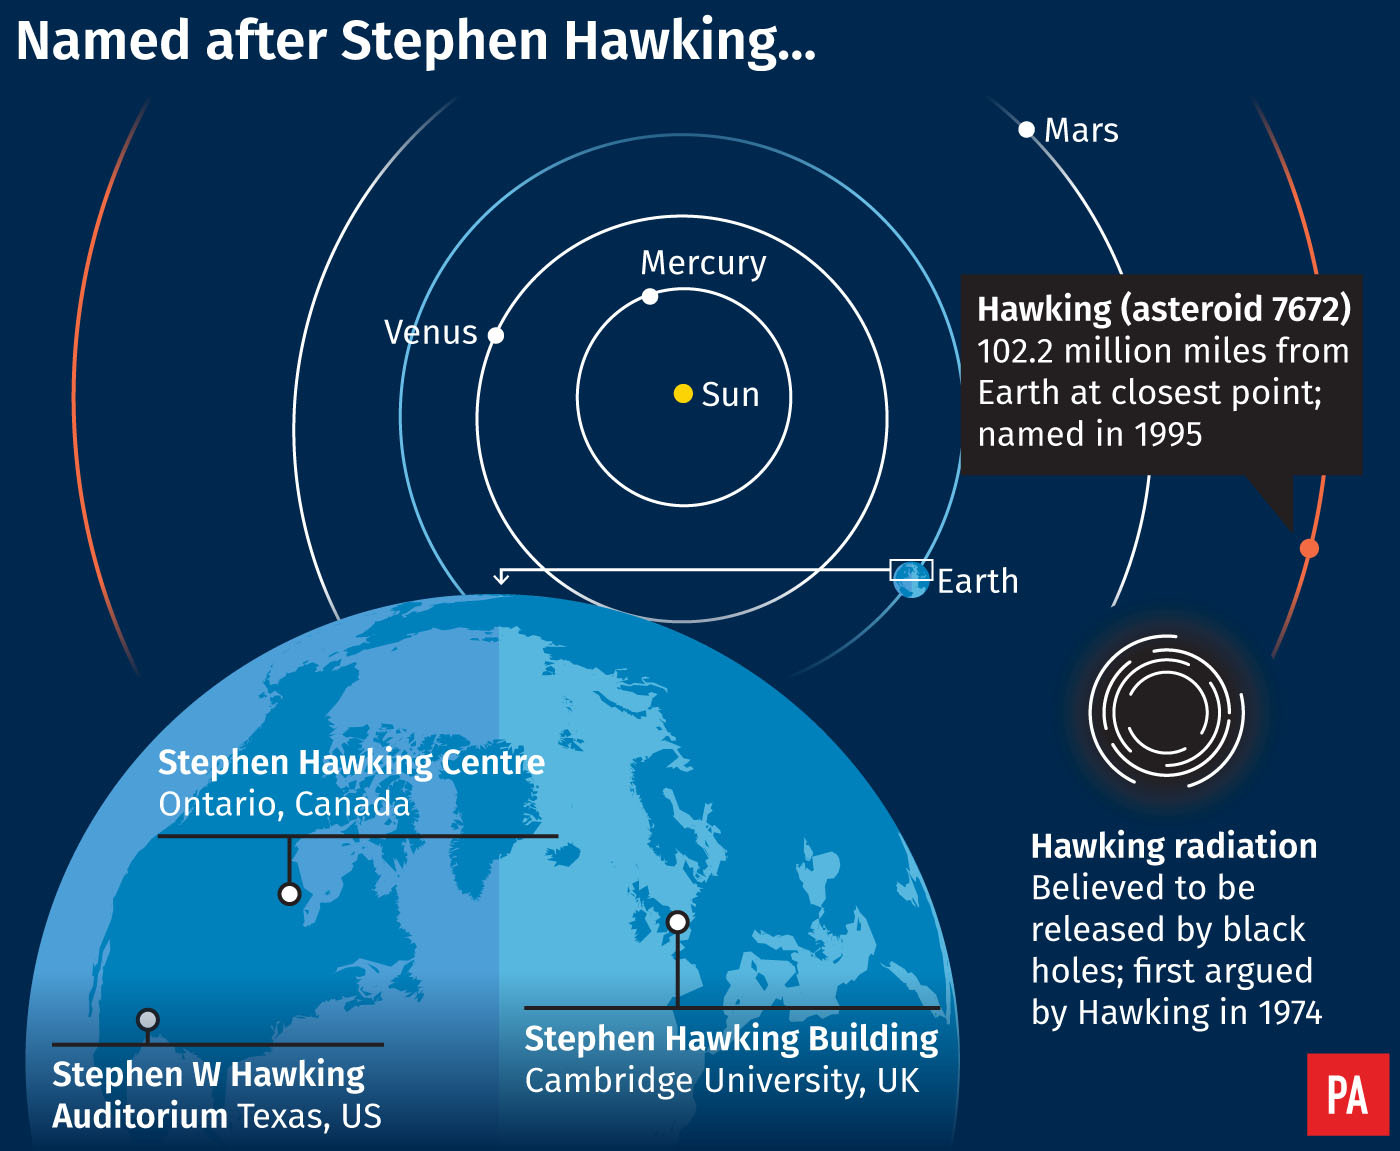 Stephen Hawking shrunk the cosmos